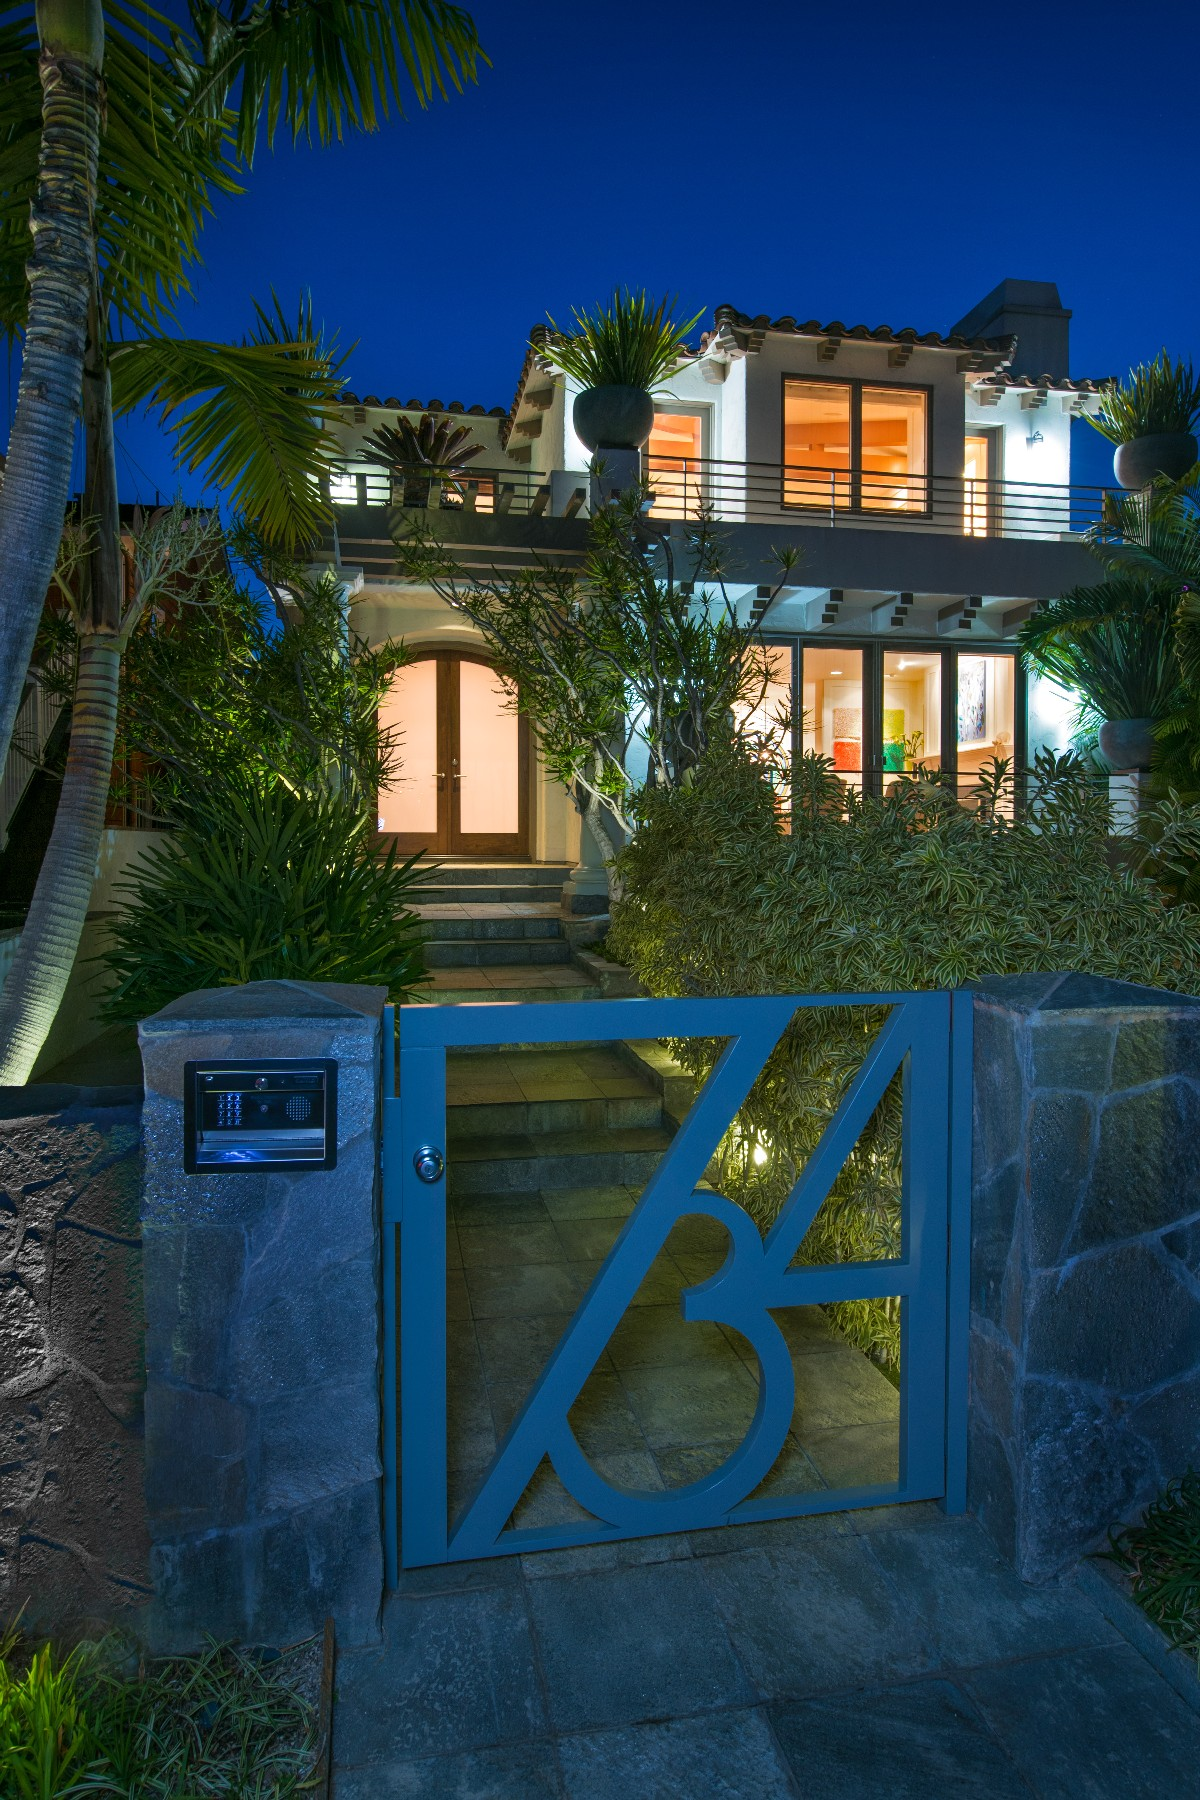 Additional photo for property listing at 734 Glorietta Boulevard  Coronado, Californie 92118 États-Unis